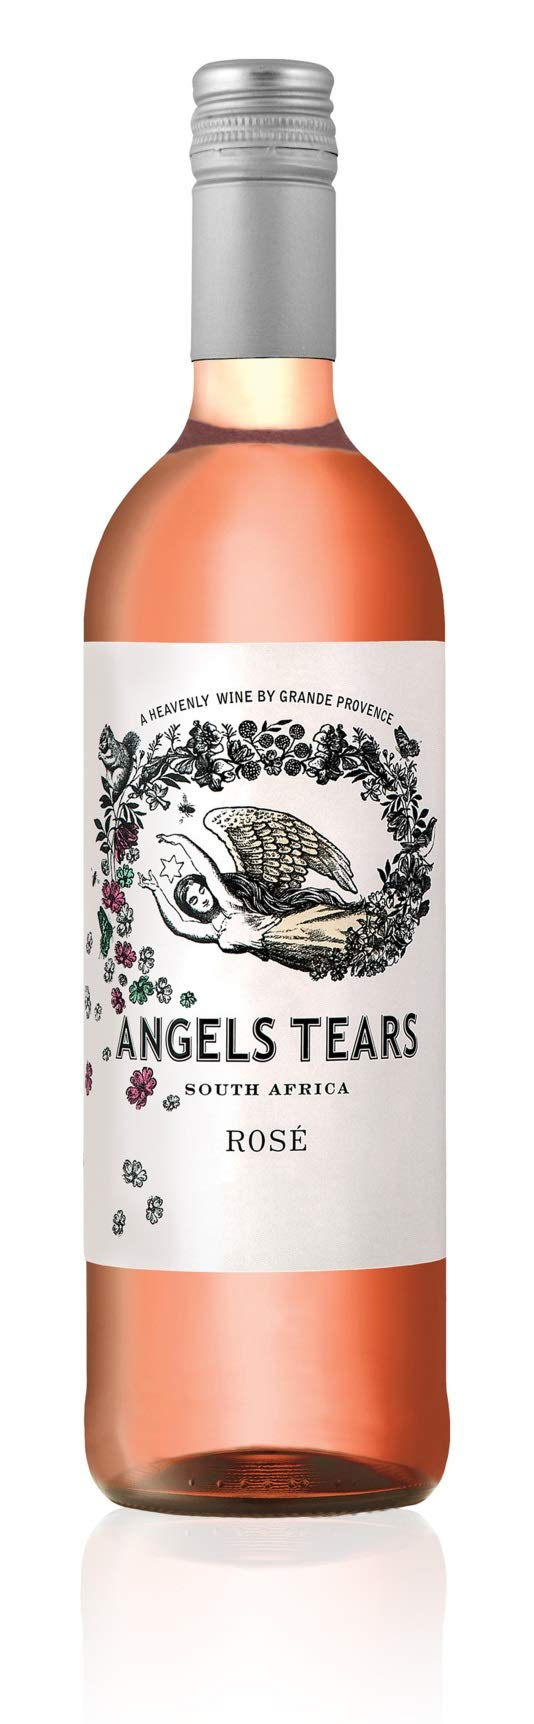 2017-Angels-Tears-Rose-6-x-075-l